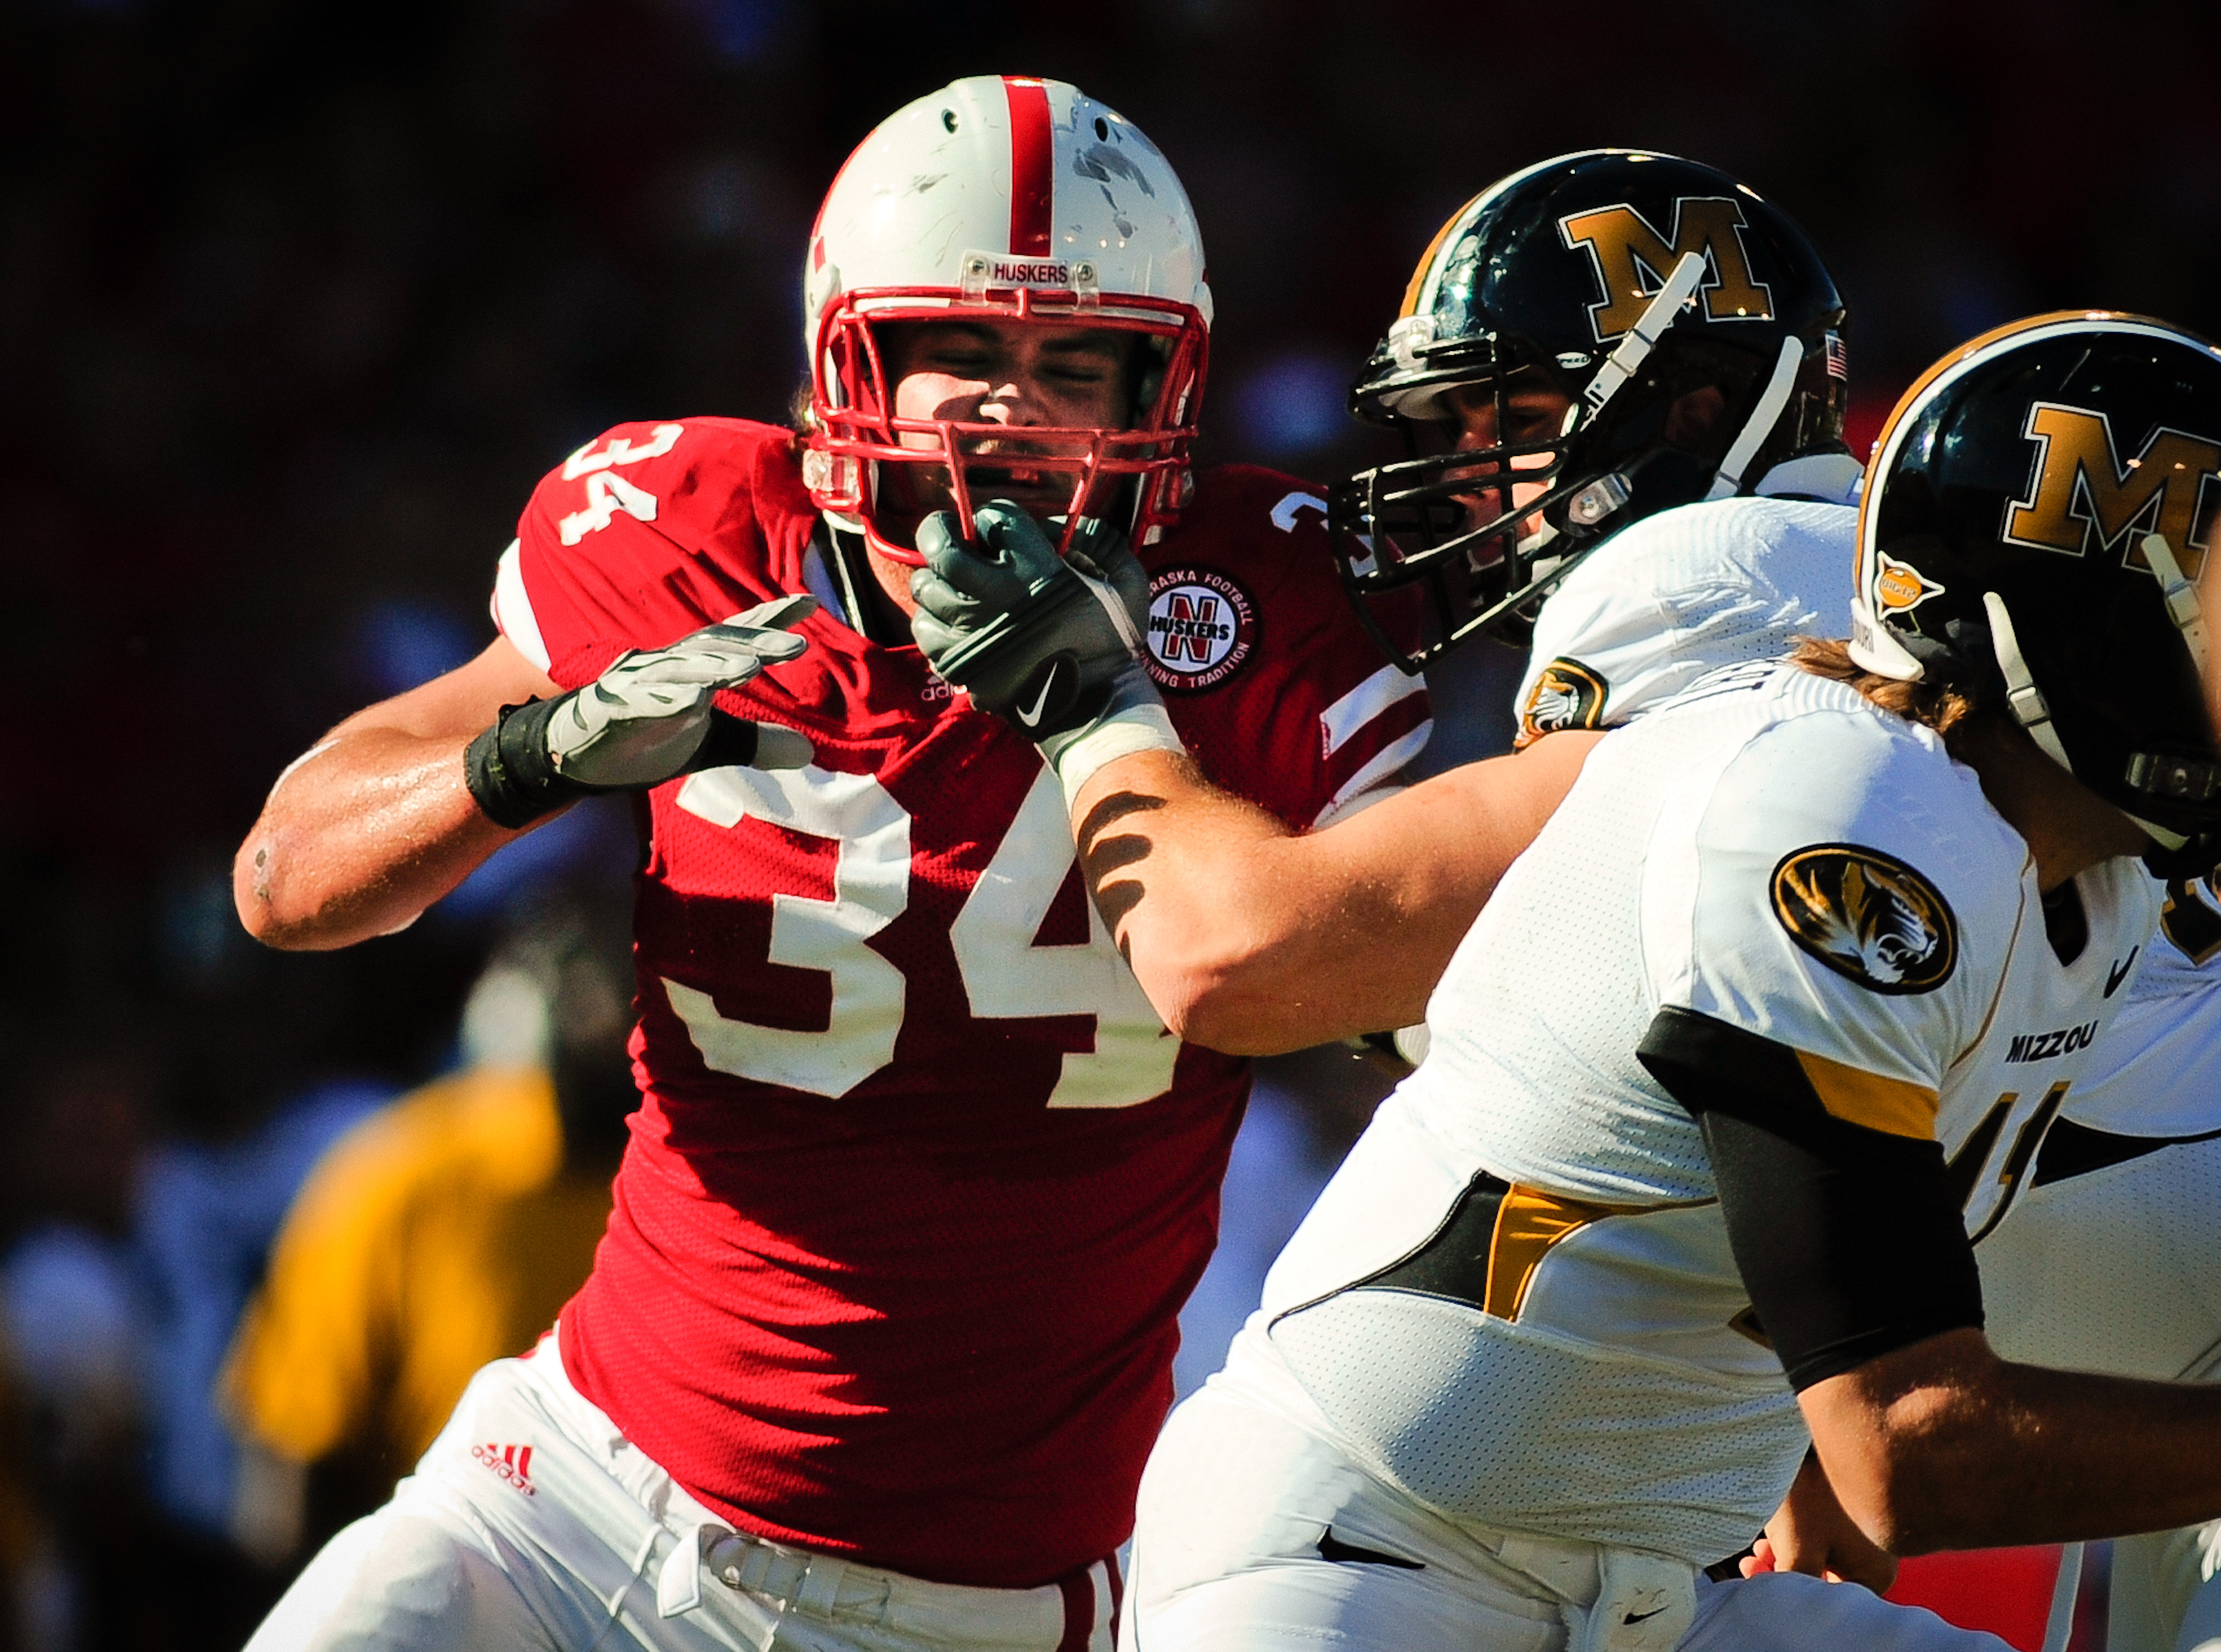 LINCOLN, NE - OCTOBER 30: Defensive end Cameron Meredith #34 of the Nebraska Cornhuskers  tries to beat offensive linesman Elvis Fisher #72 of the Missouri Tigers during first half action of their game at Memorial Stadium on October 30, 2010 in Lincoln, N